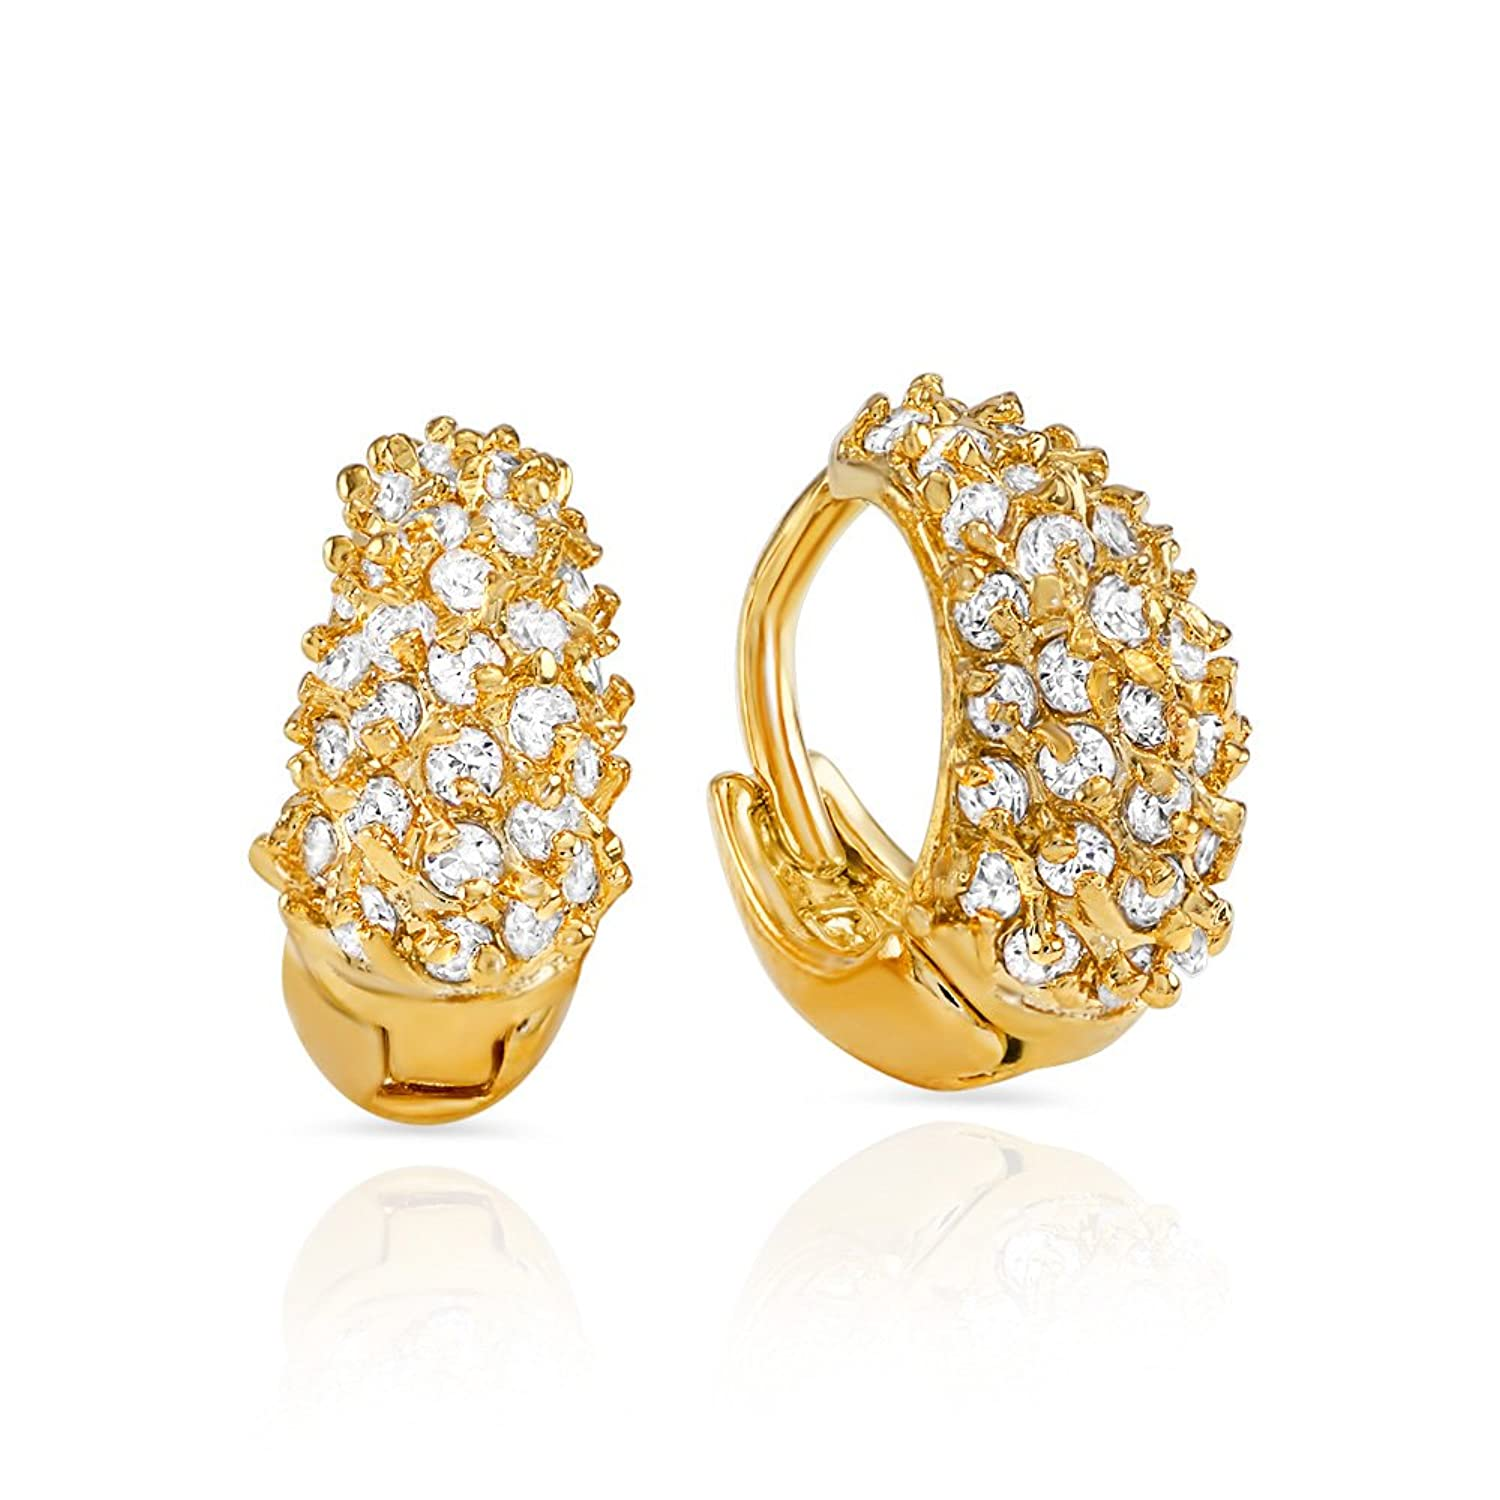 jewellery stylish watch latest designs earring collection light weight gold jewelry earrings